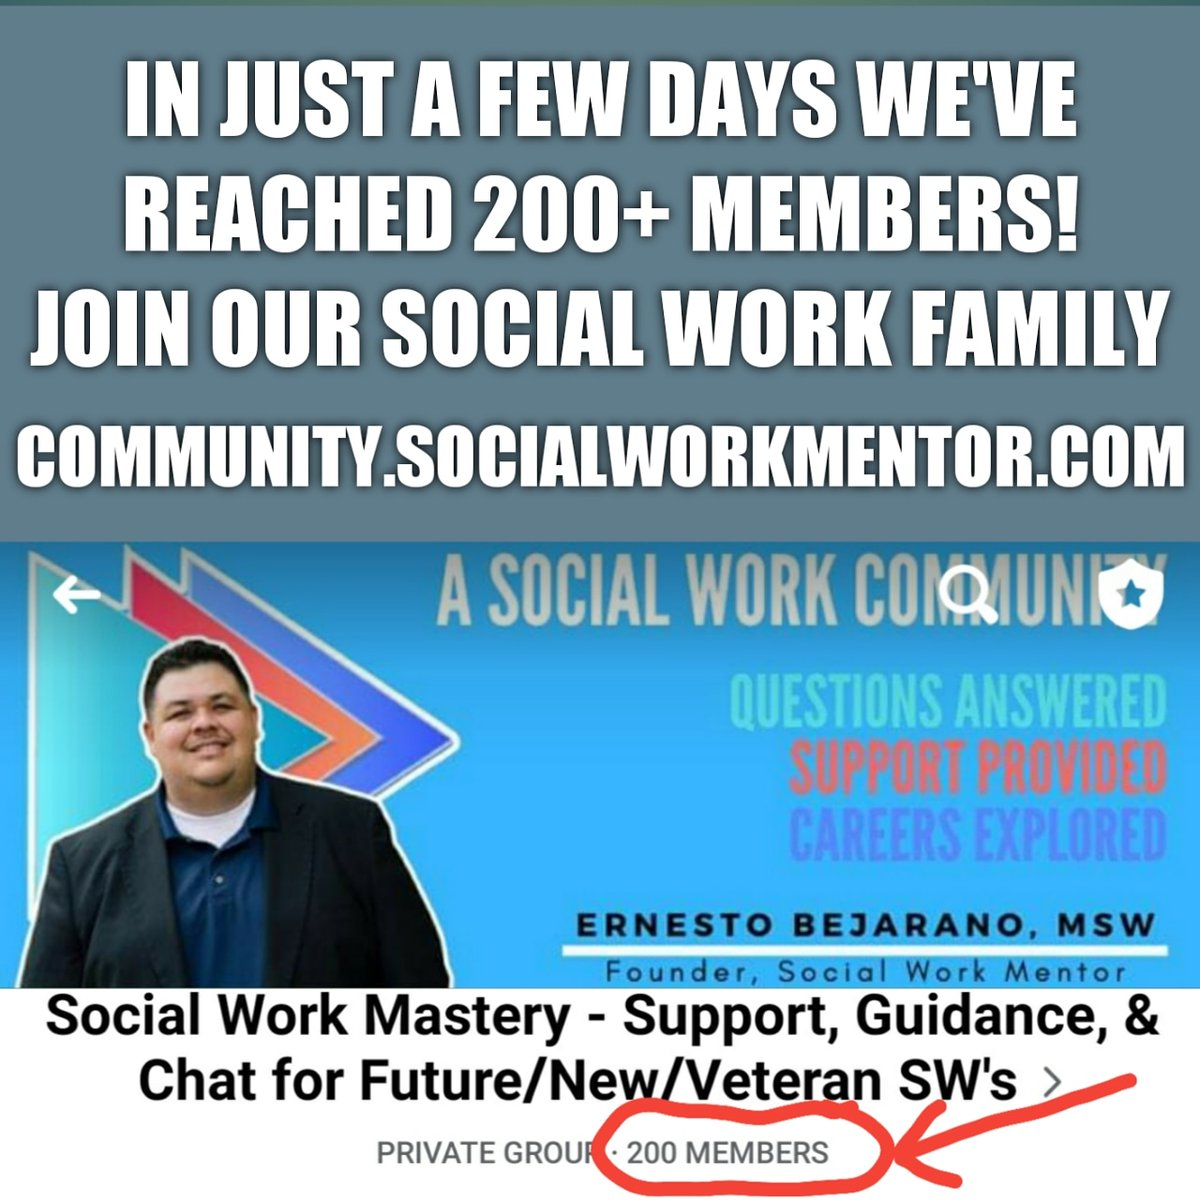 💥💥💥We're growing by leaps and bounds!!! Come join the family❤️❤️❤️  https://t.co/EbhyJEQFKG  #SocialWorkMentor #socialwork #socialworker #MSW #BSW #LCSW #NASW #LMFT #schoolofsocialwork https://t.co/t3pVlgexHM